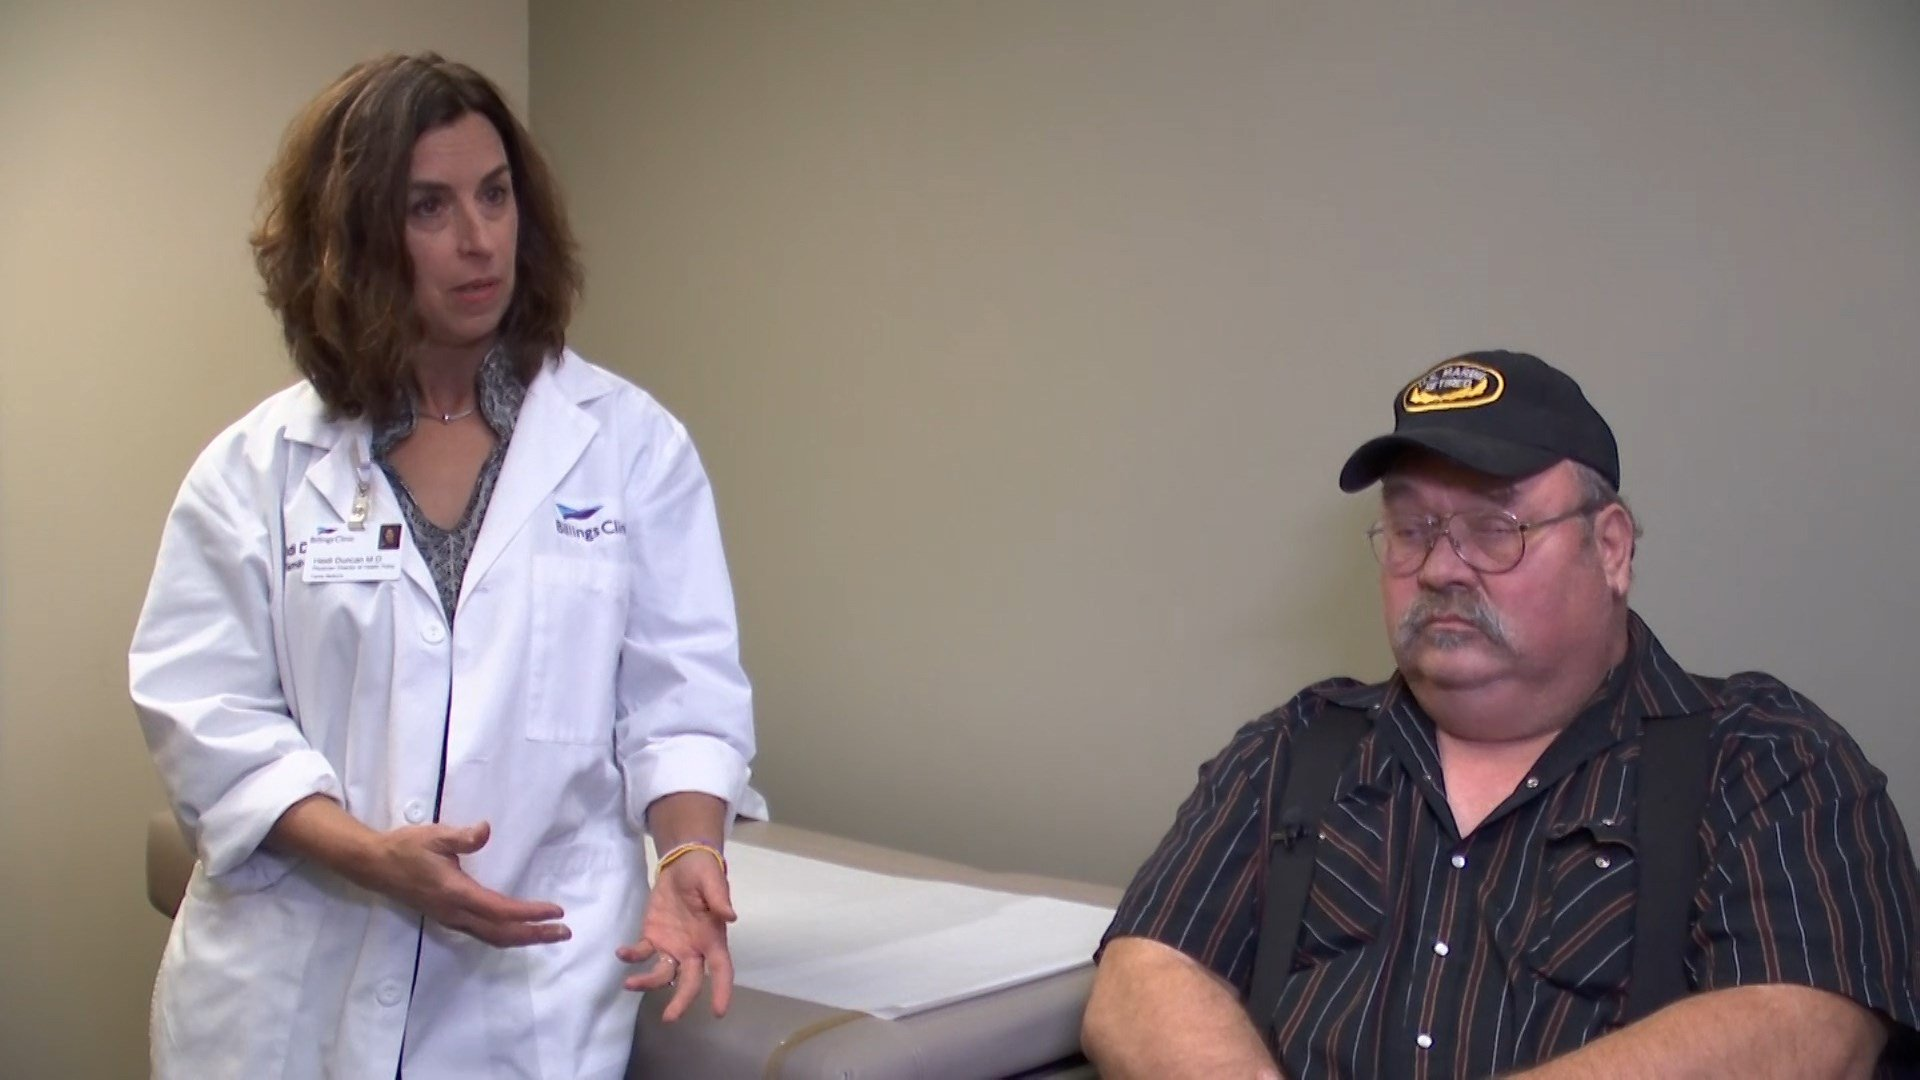 Billings Clinic physician Heidi Duncan with Medicaid-covered patient, Frank Keele